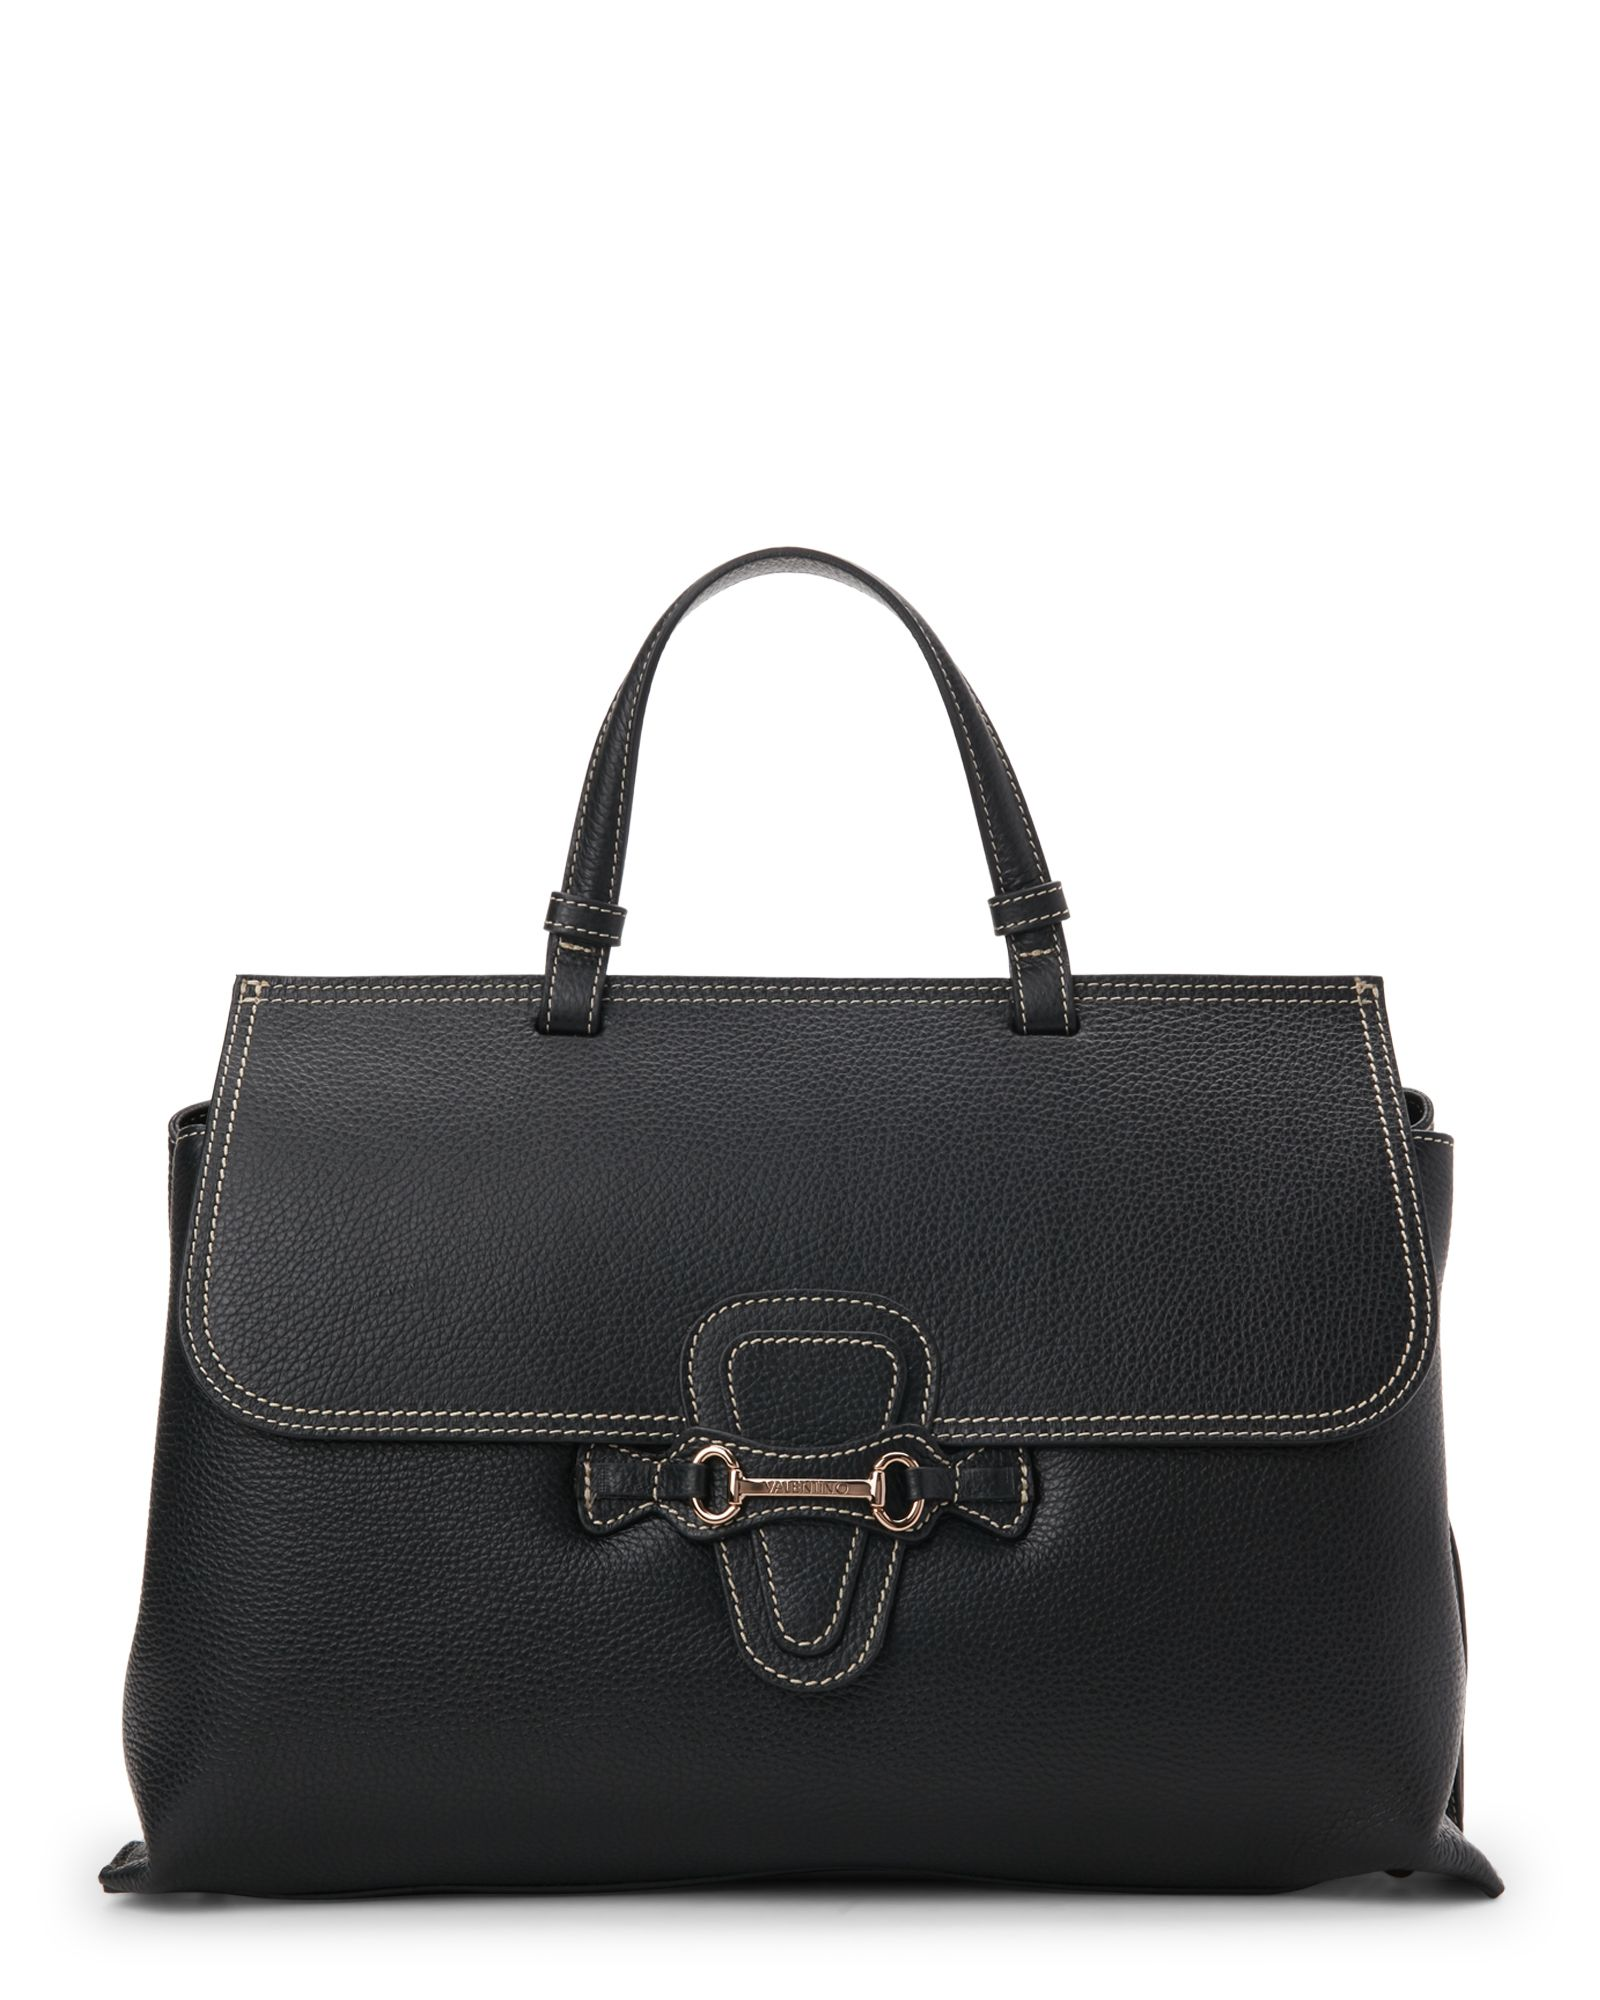 Valentino By Mario Valentino Black Olympia Dollaro Pebbled Top Handle Satchel